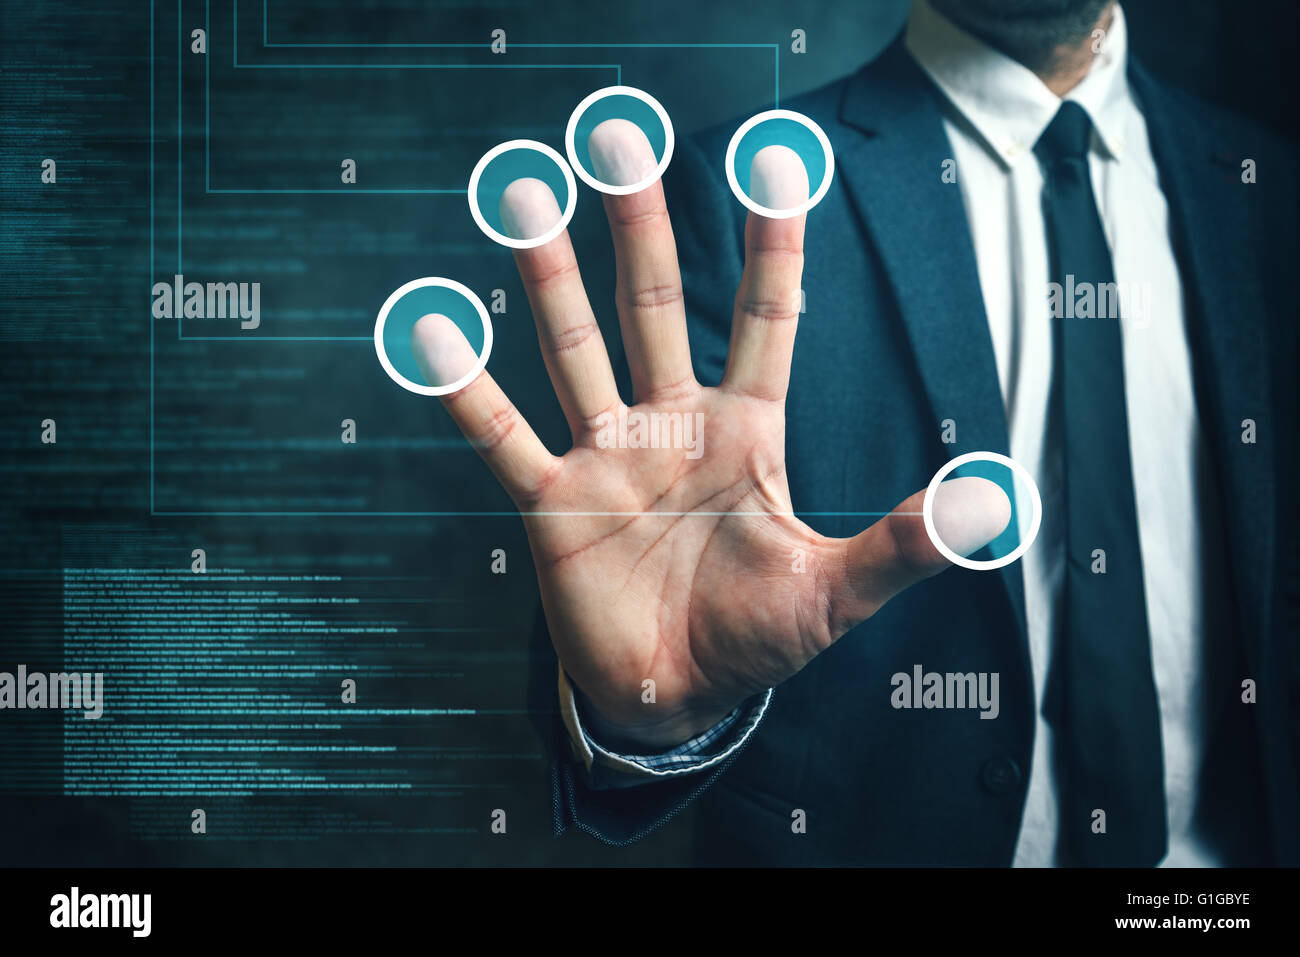 Businessman passing biometric verification with fingerprint scanner, modern futuristic technology in service of - Stock Image